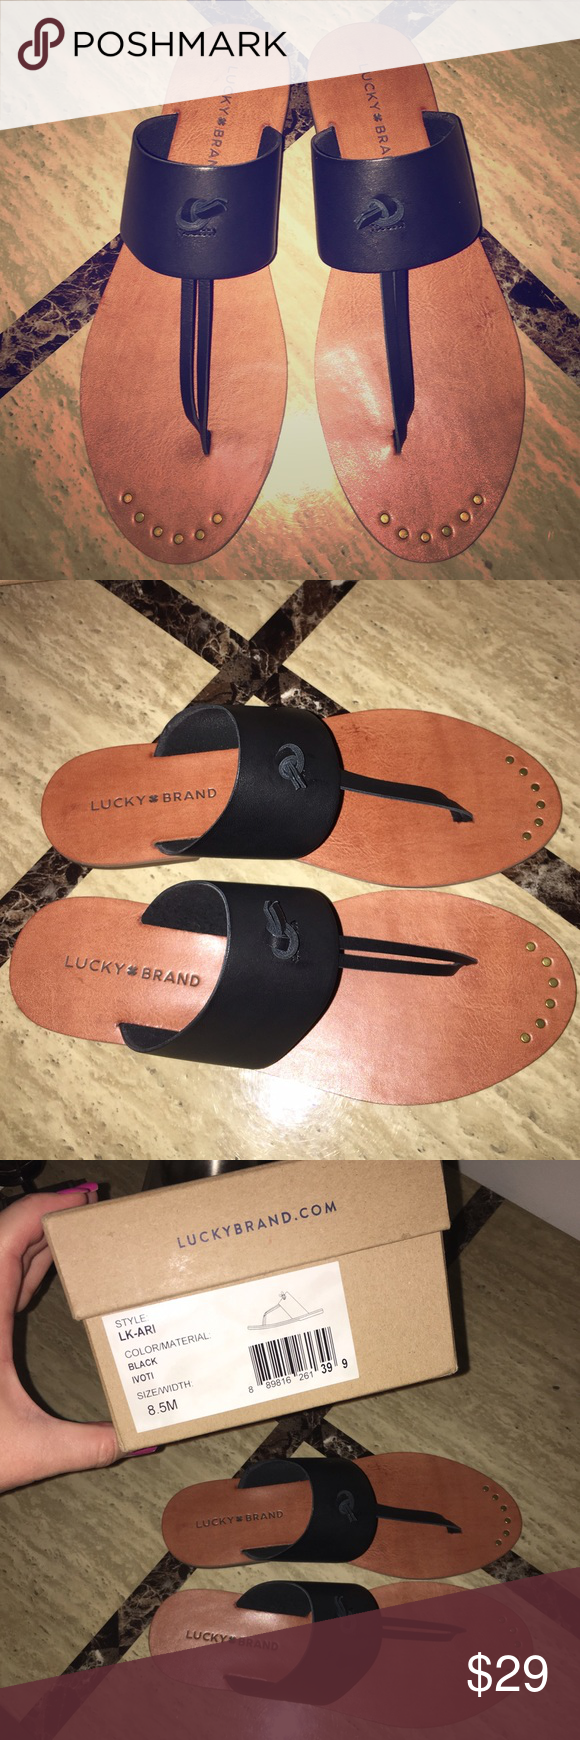 Lucky Brand Ari Black Thong Sandals Lucky Brand Ari Thong sandal with wide leather band, knotted Thong and gold stud details at toe.  Rubber sole for traction. Brand new never worn. Box included. Lucky Brand Shoes Sandals